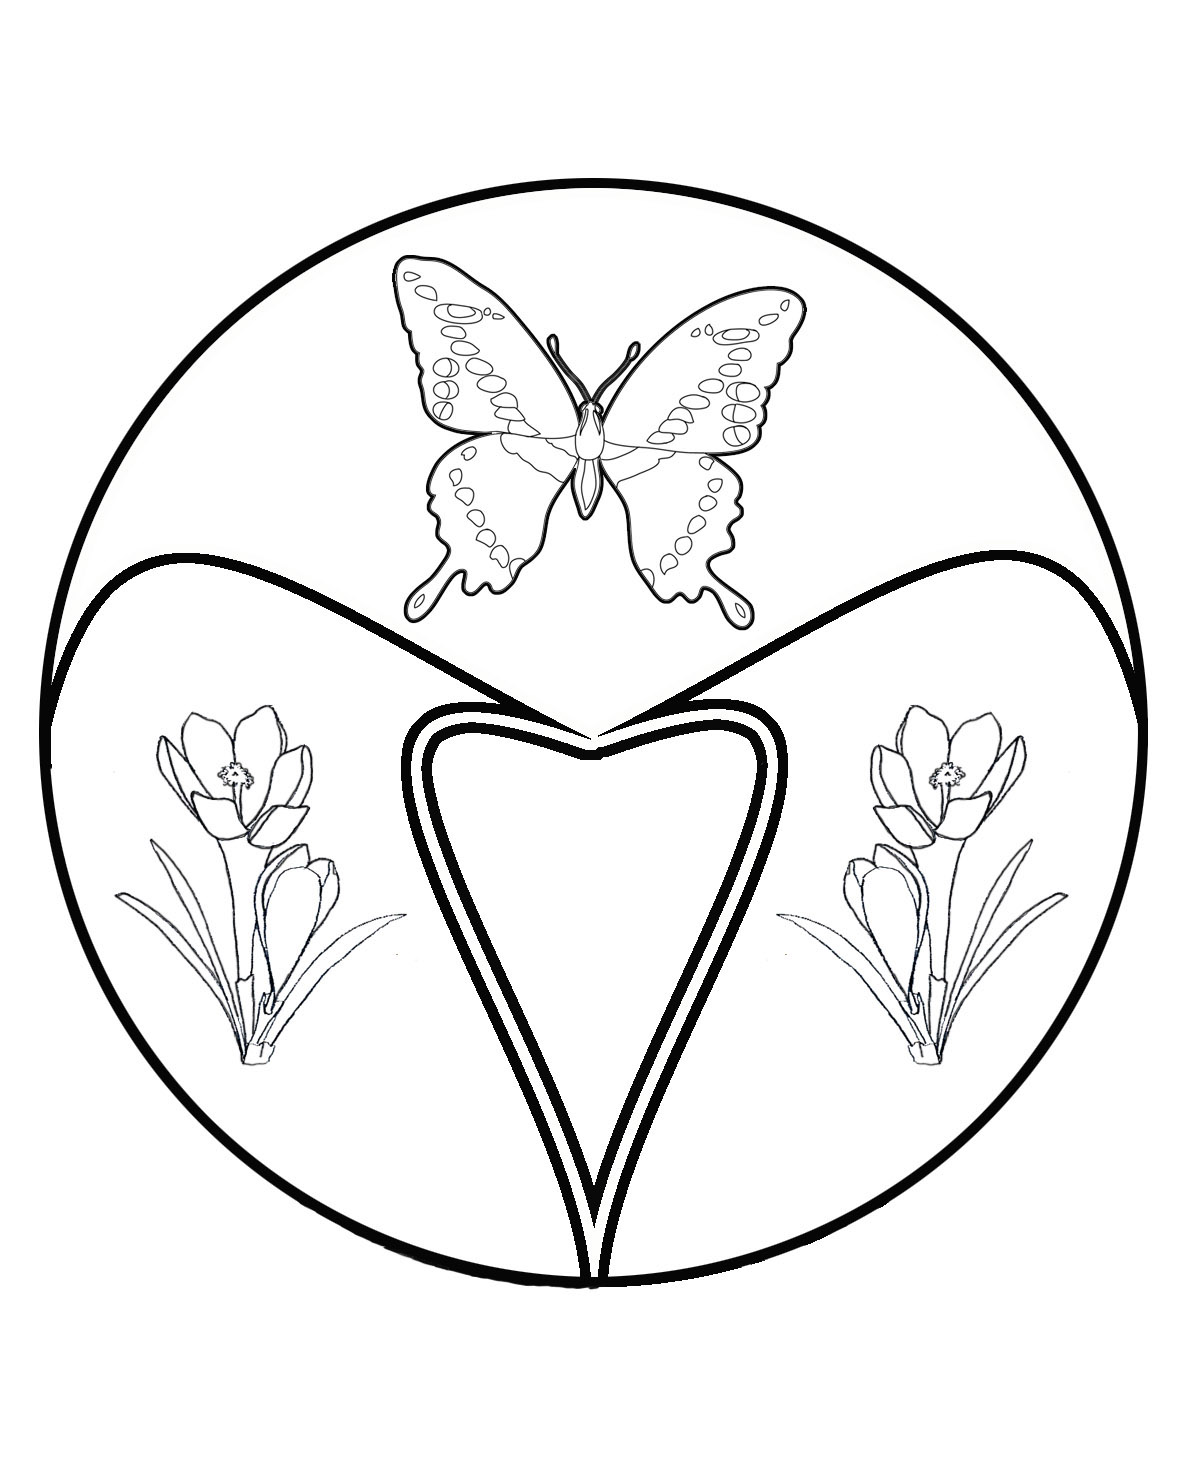 hearts and butterflies coloring page free printable - HD1181×1476